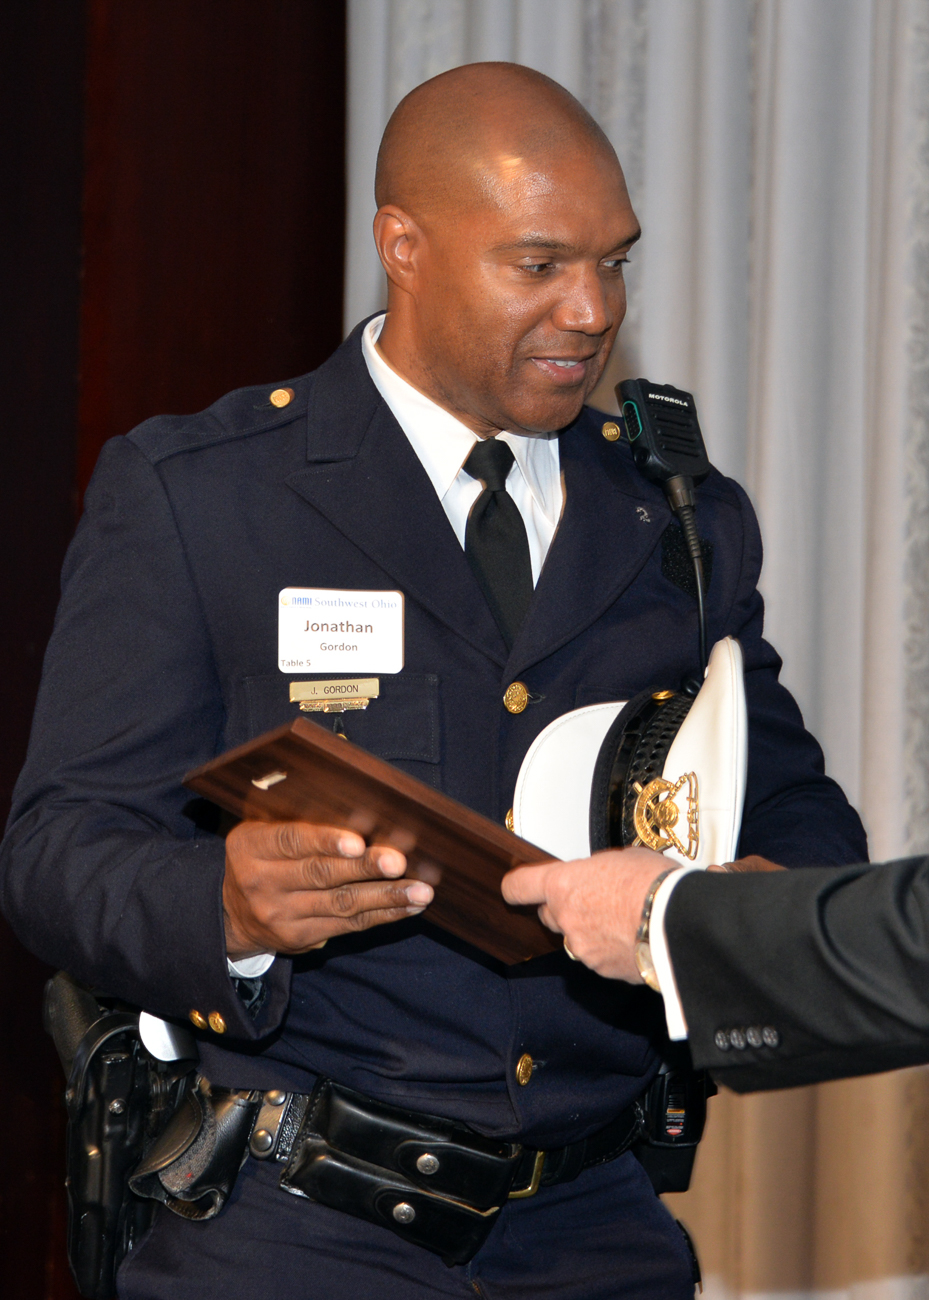 CPD Officer Jonathan Gordon, 2017 Award Winner / Image: Tom Uhlman Photo // Published: 10.3.19